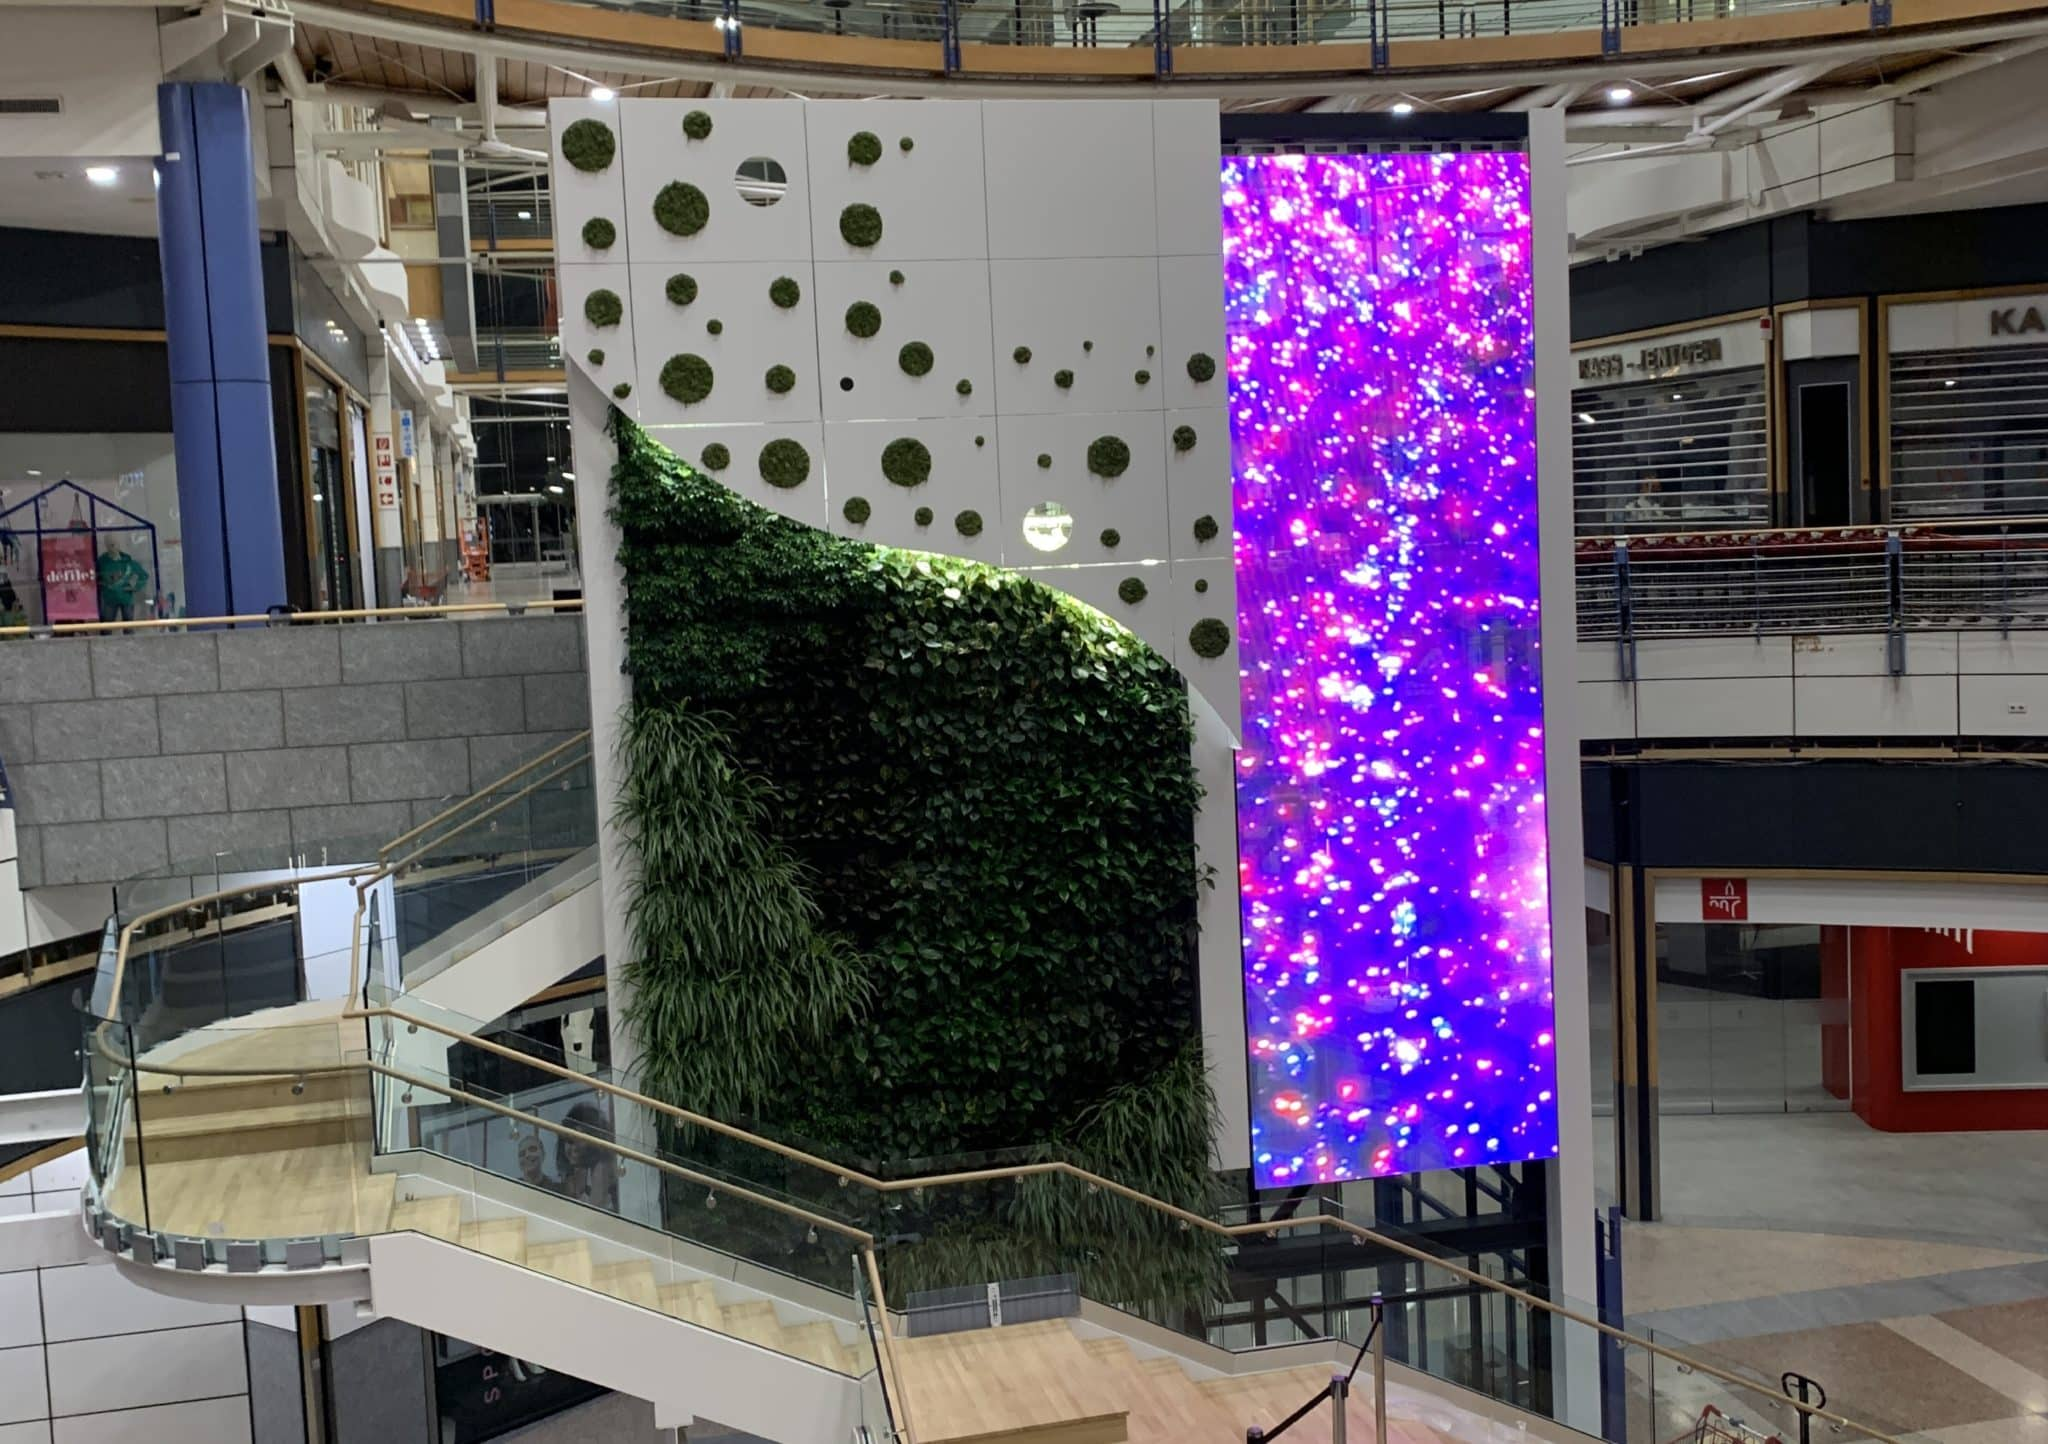 Ecran video transparent sur ascenseur centre commercial luxembourg